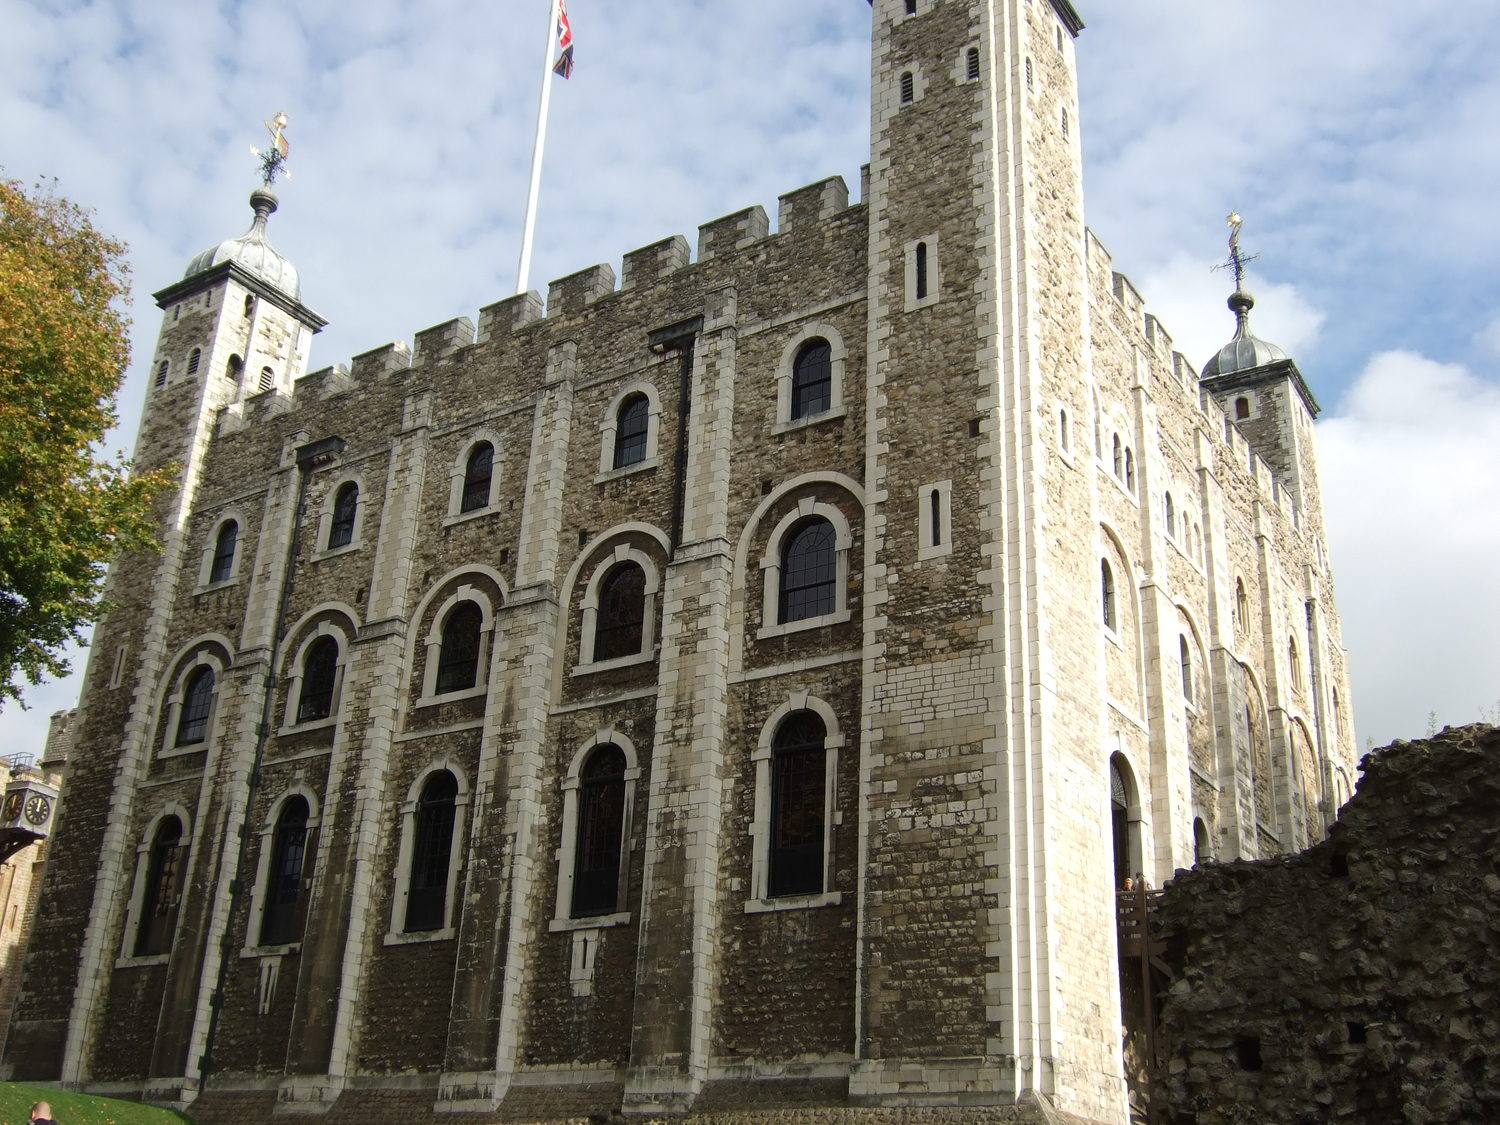 26_The_White_Tower_of_Tower_of_London